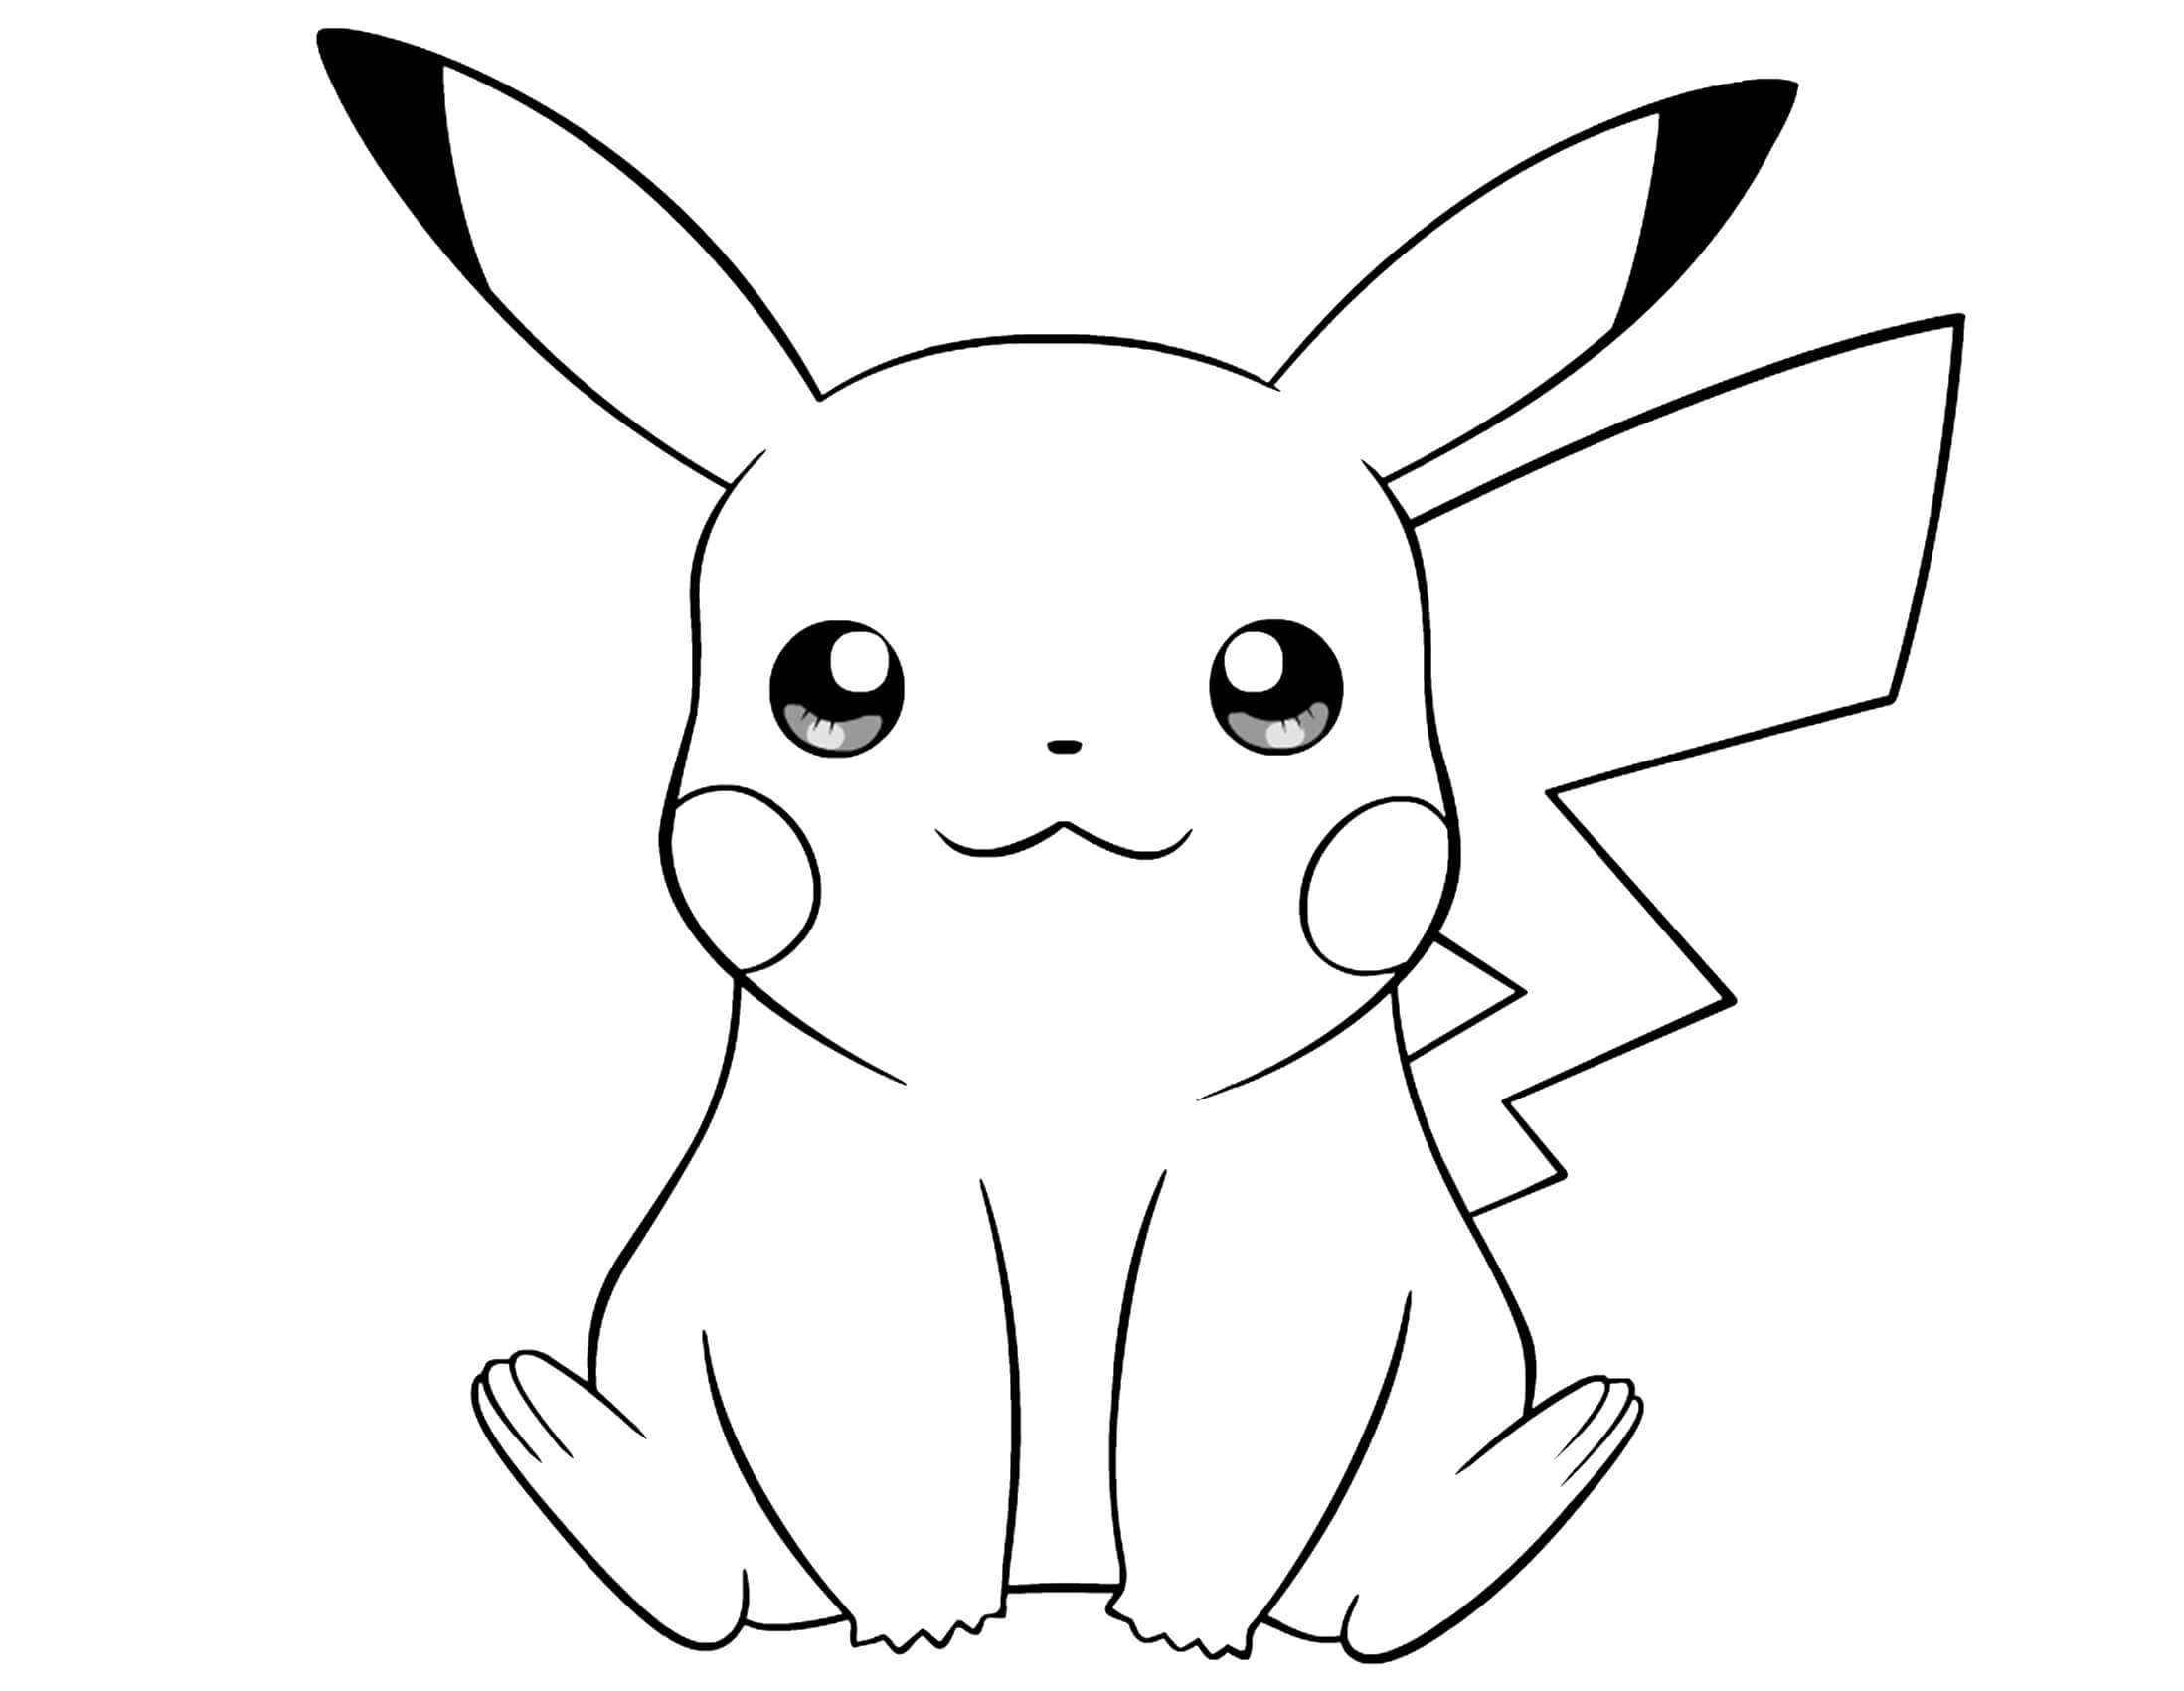 pikachu cute pokemon coloring pages cute baby pikachu coloring pages coloring pages pikachu cute pages coloring pokemon